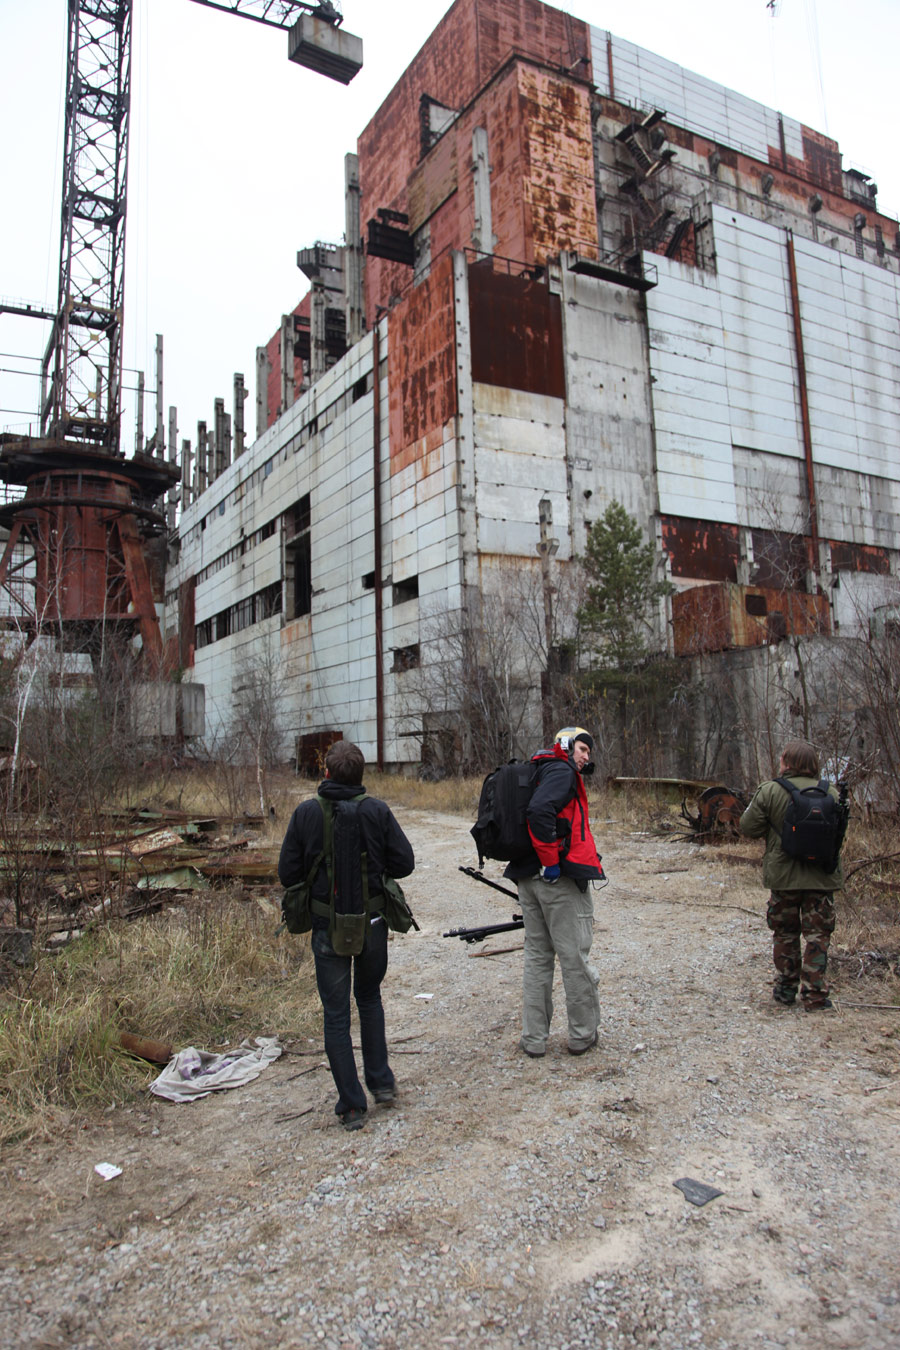 Outside Reactor #6, Chernobyl, Ukraine 2011